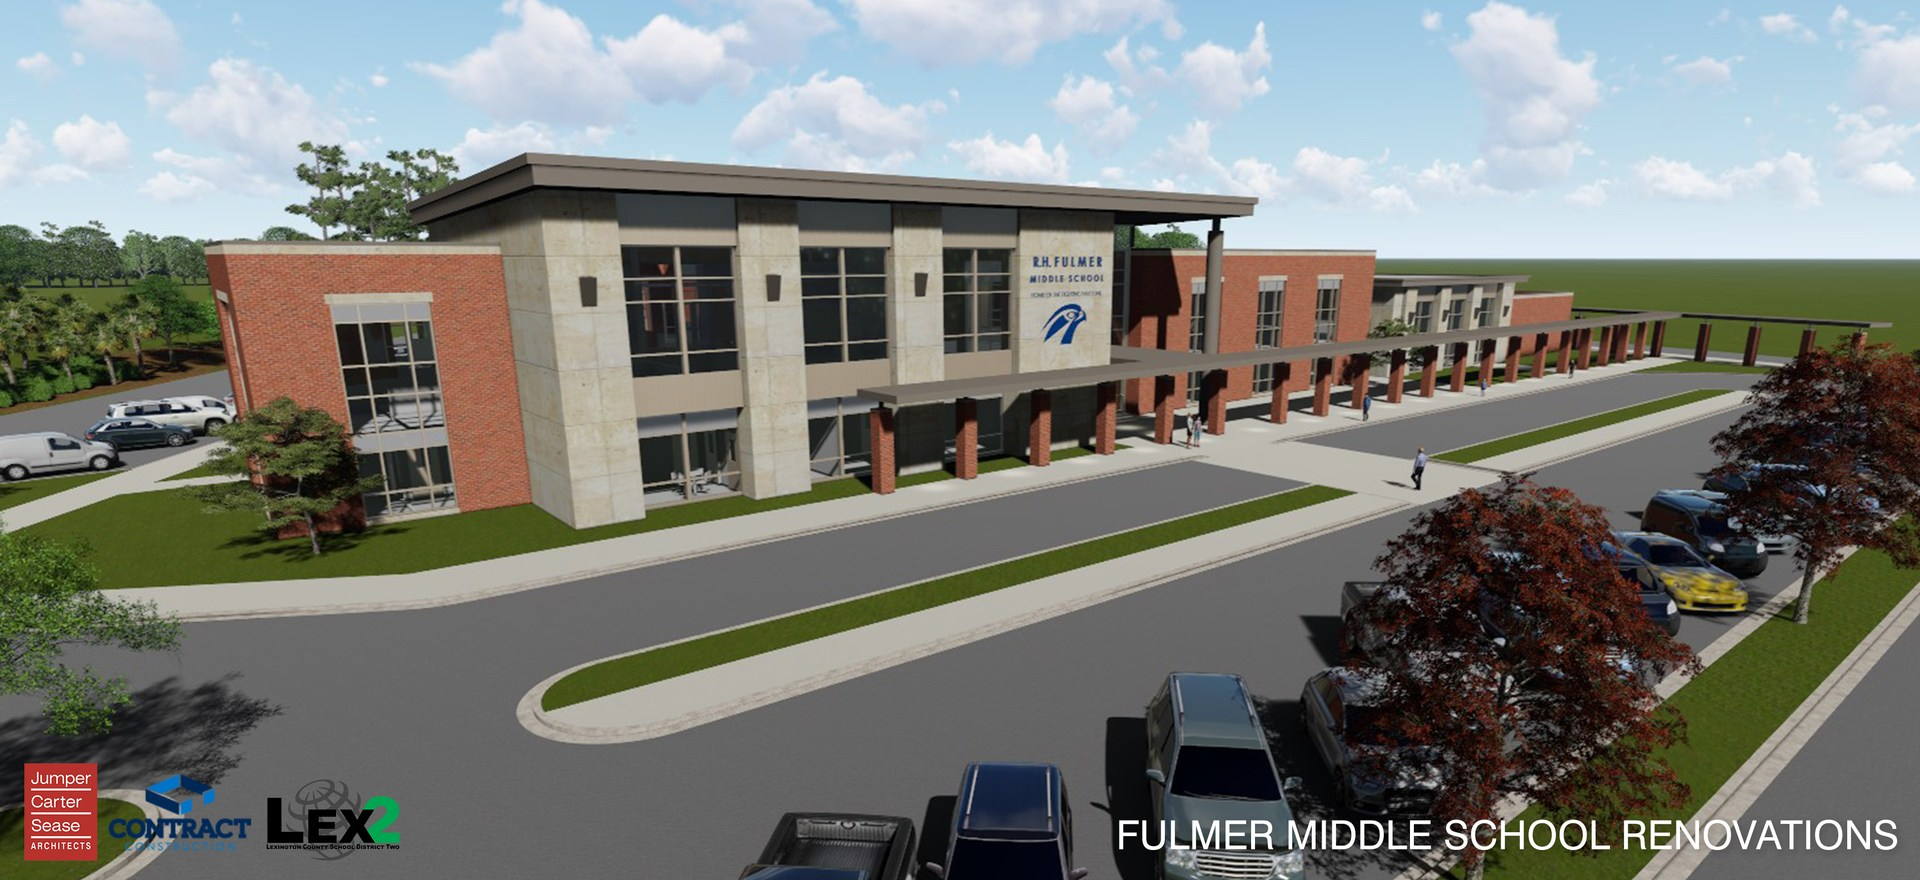 Architect's rendering of Fulmer Middle School exterior front.